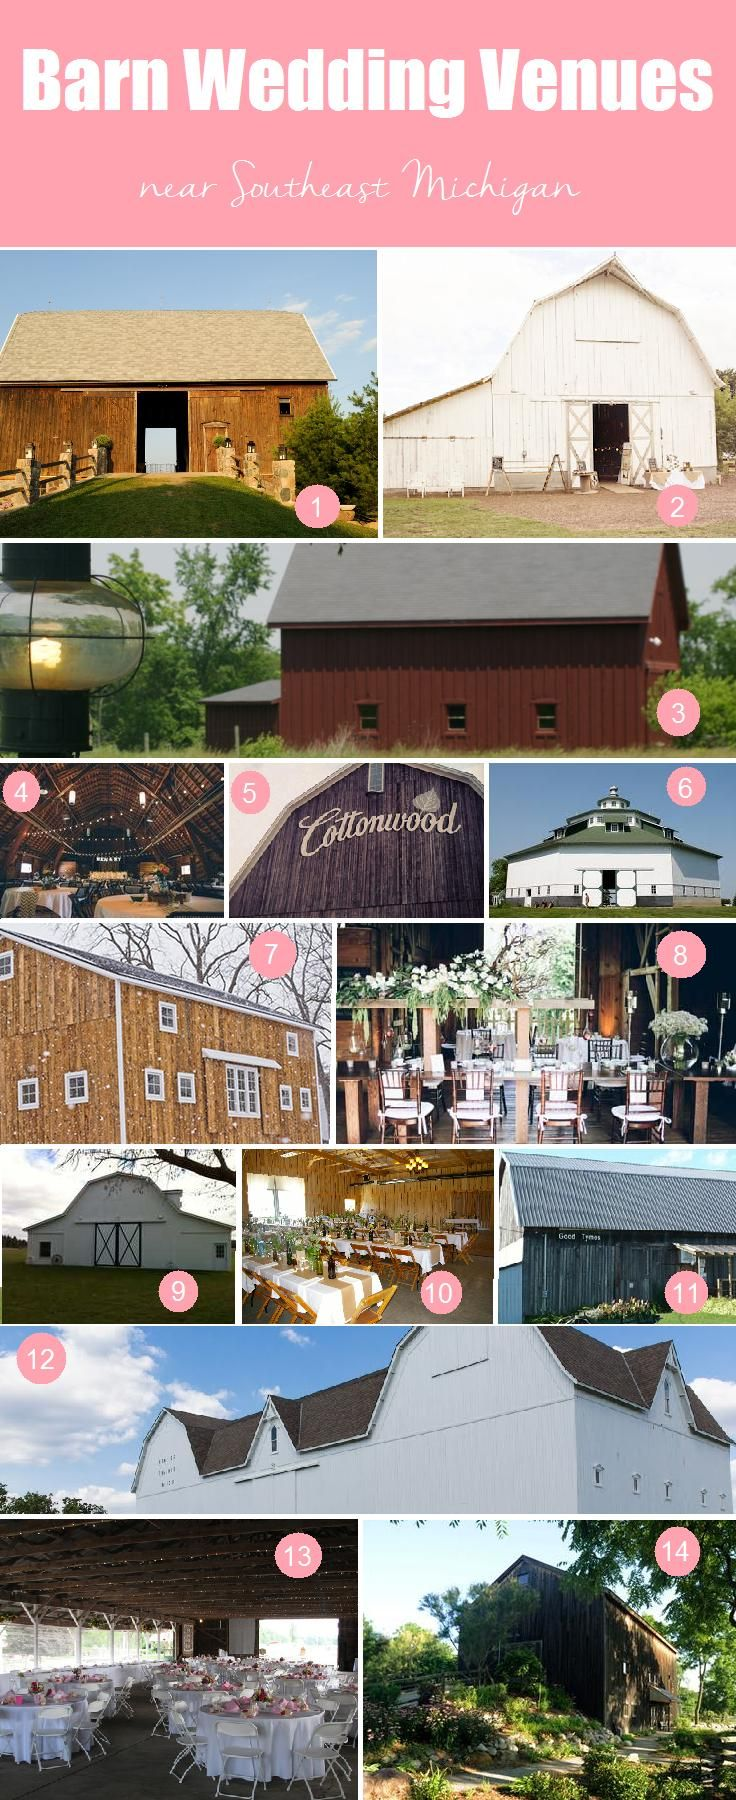 Barn Wedding Venues in Southeast Michigan